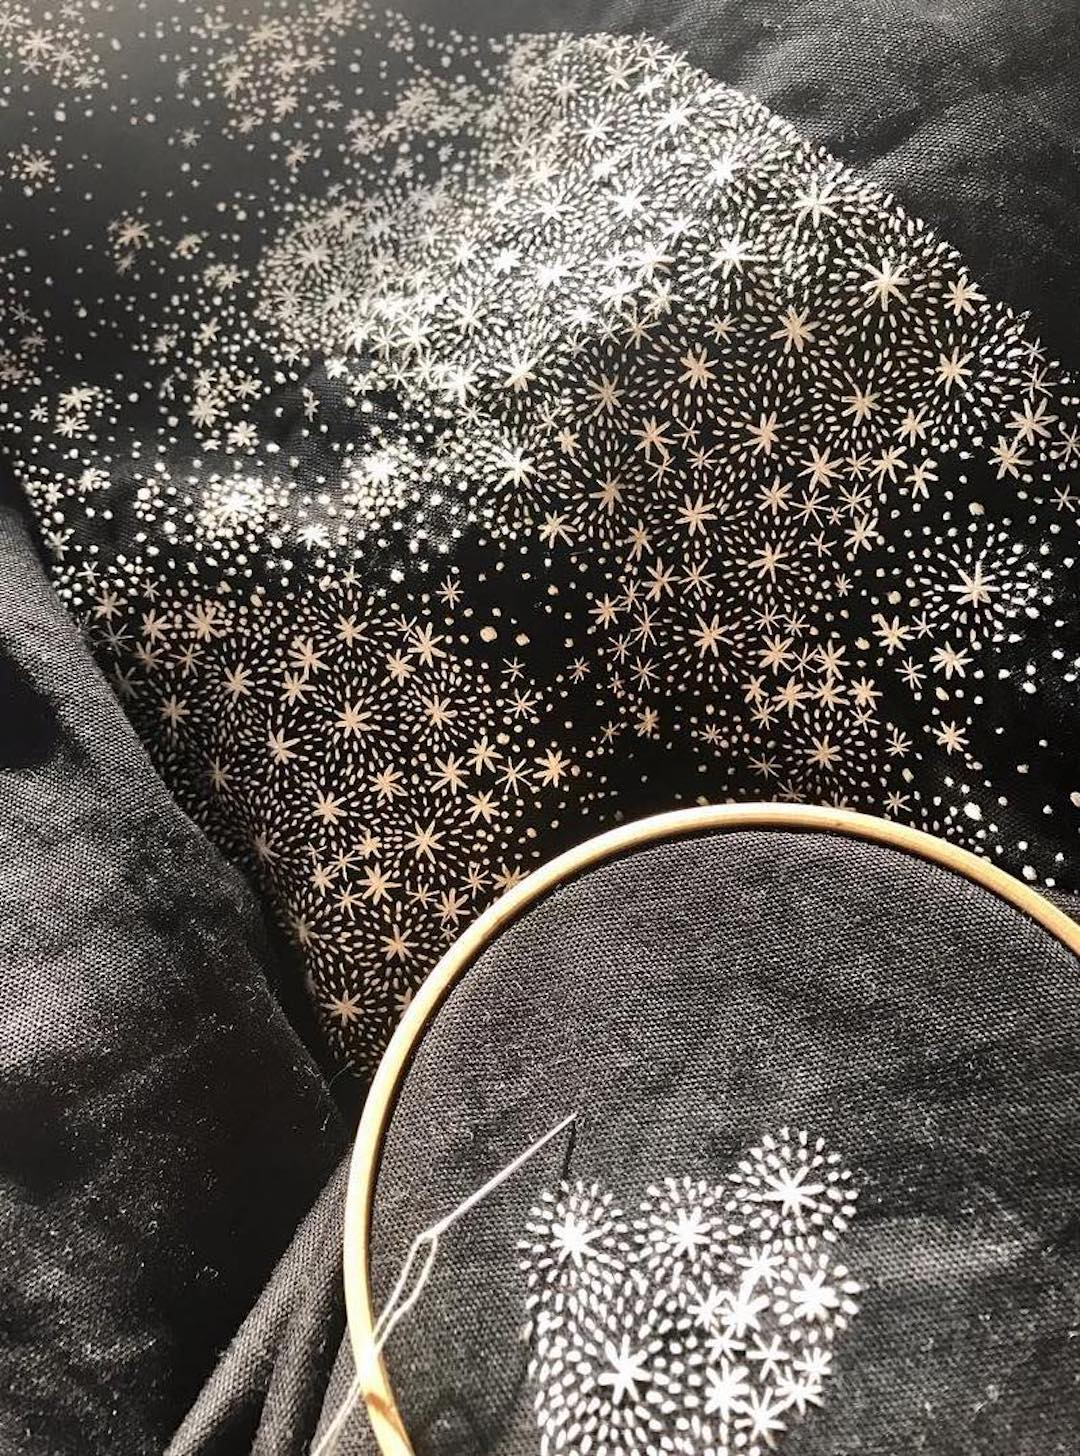 Wearable art by Juno Embroidery